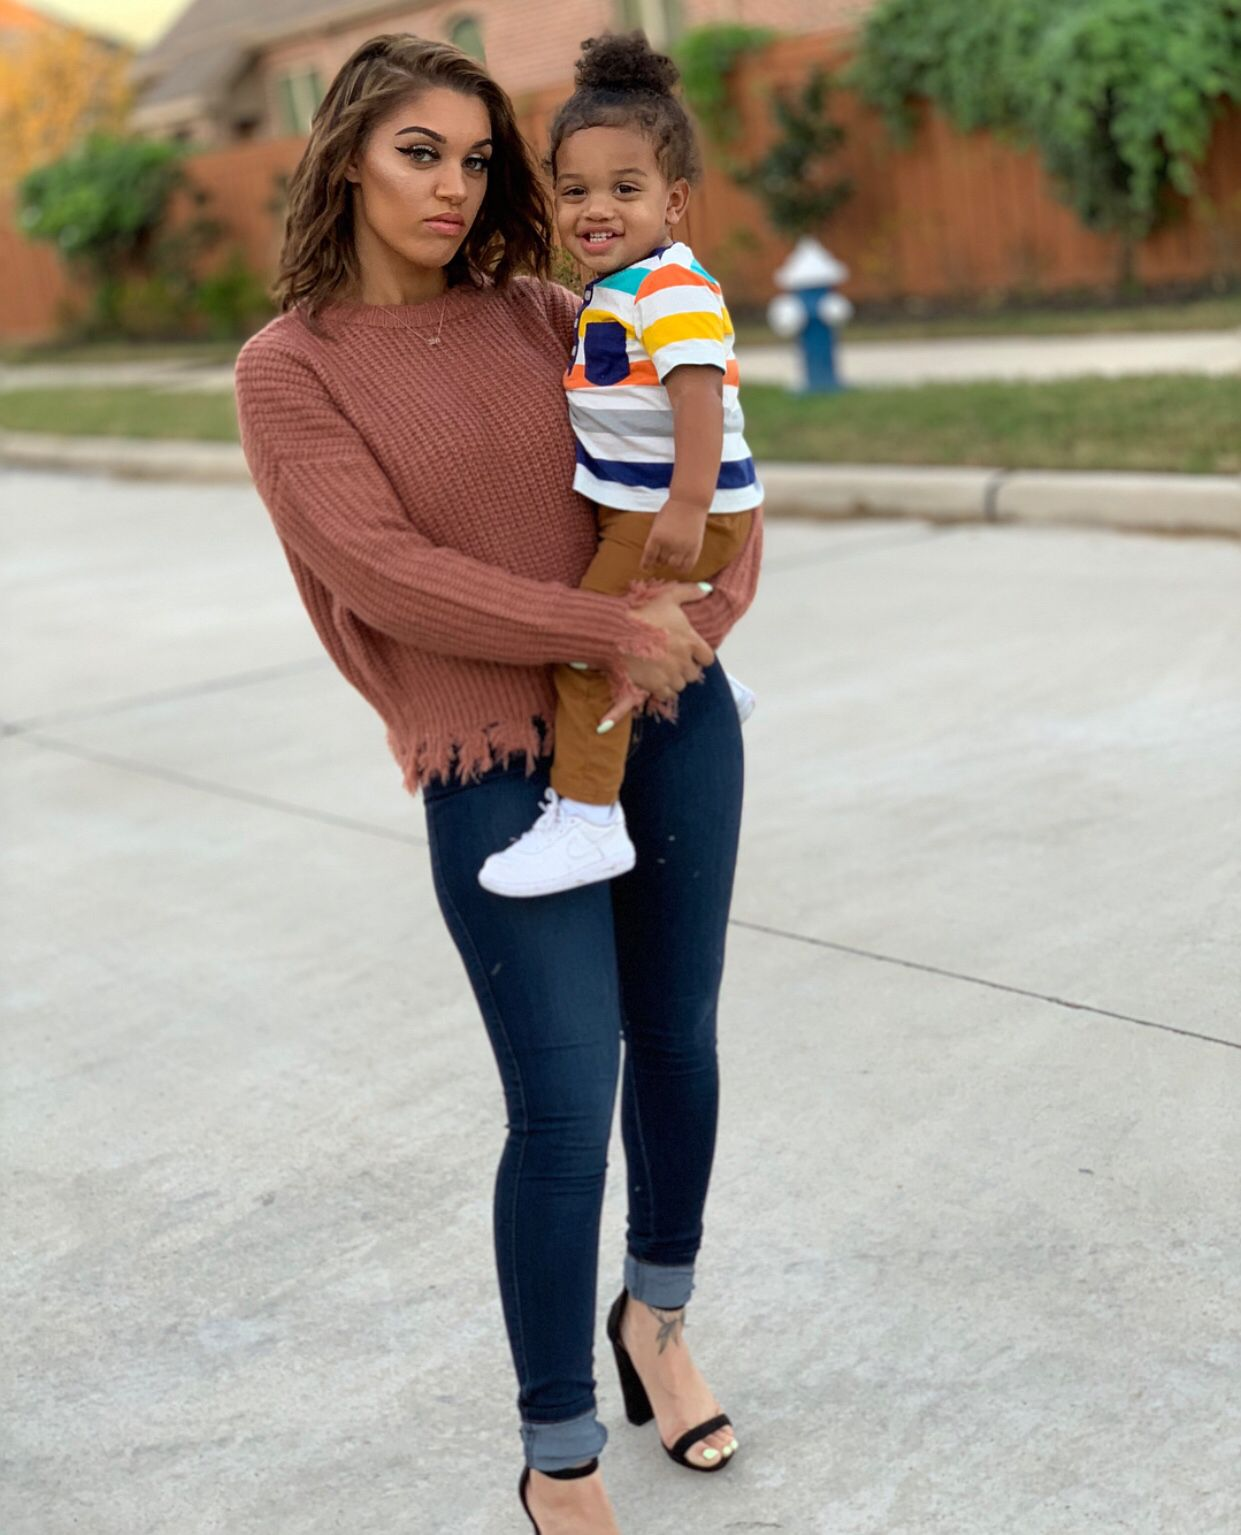 Pin By Ig K Aaylen On Goals Black Baby Boys Black Kids Fashion Family Outfits